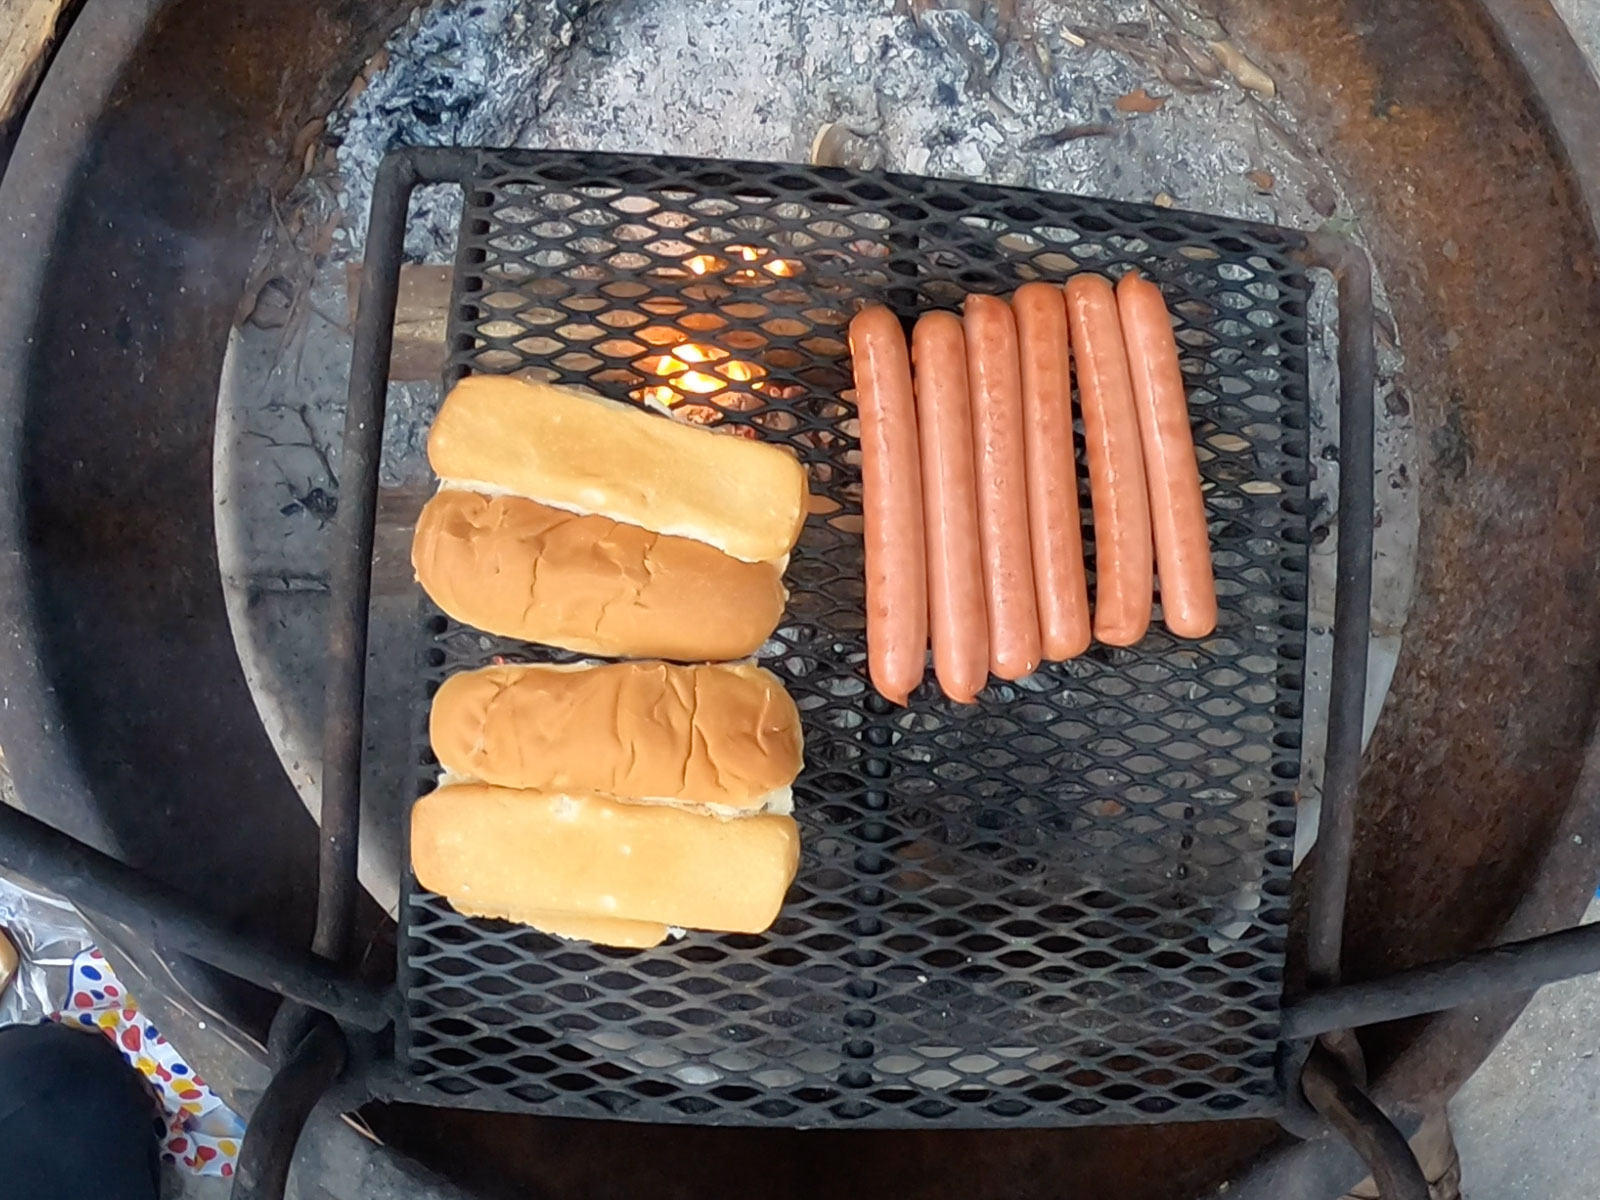 Hotdogs and buns cooking over an open fire at a campsite at Carolina Beach State Park Campground